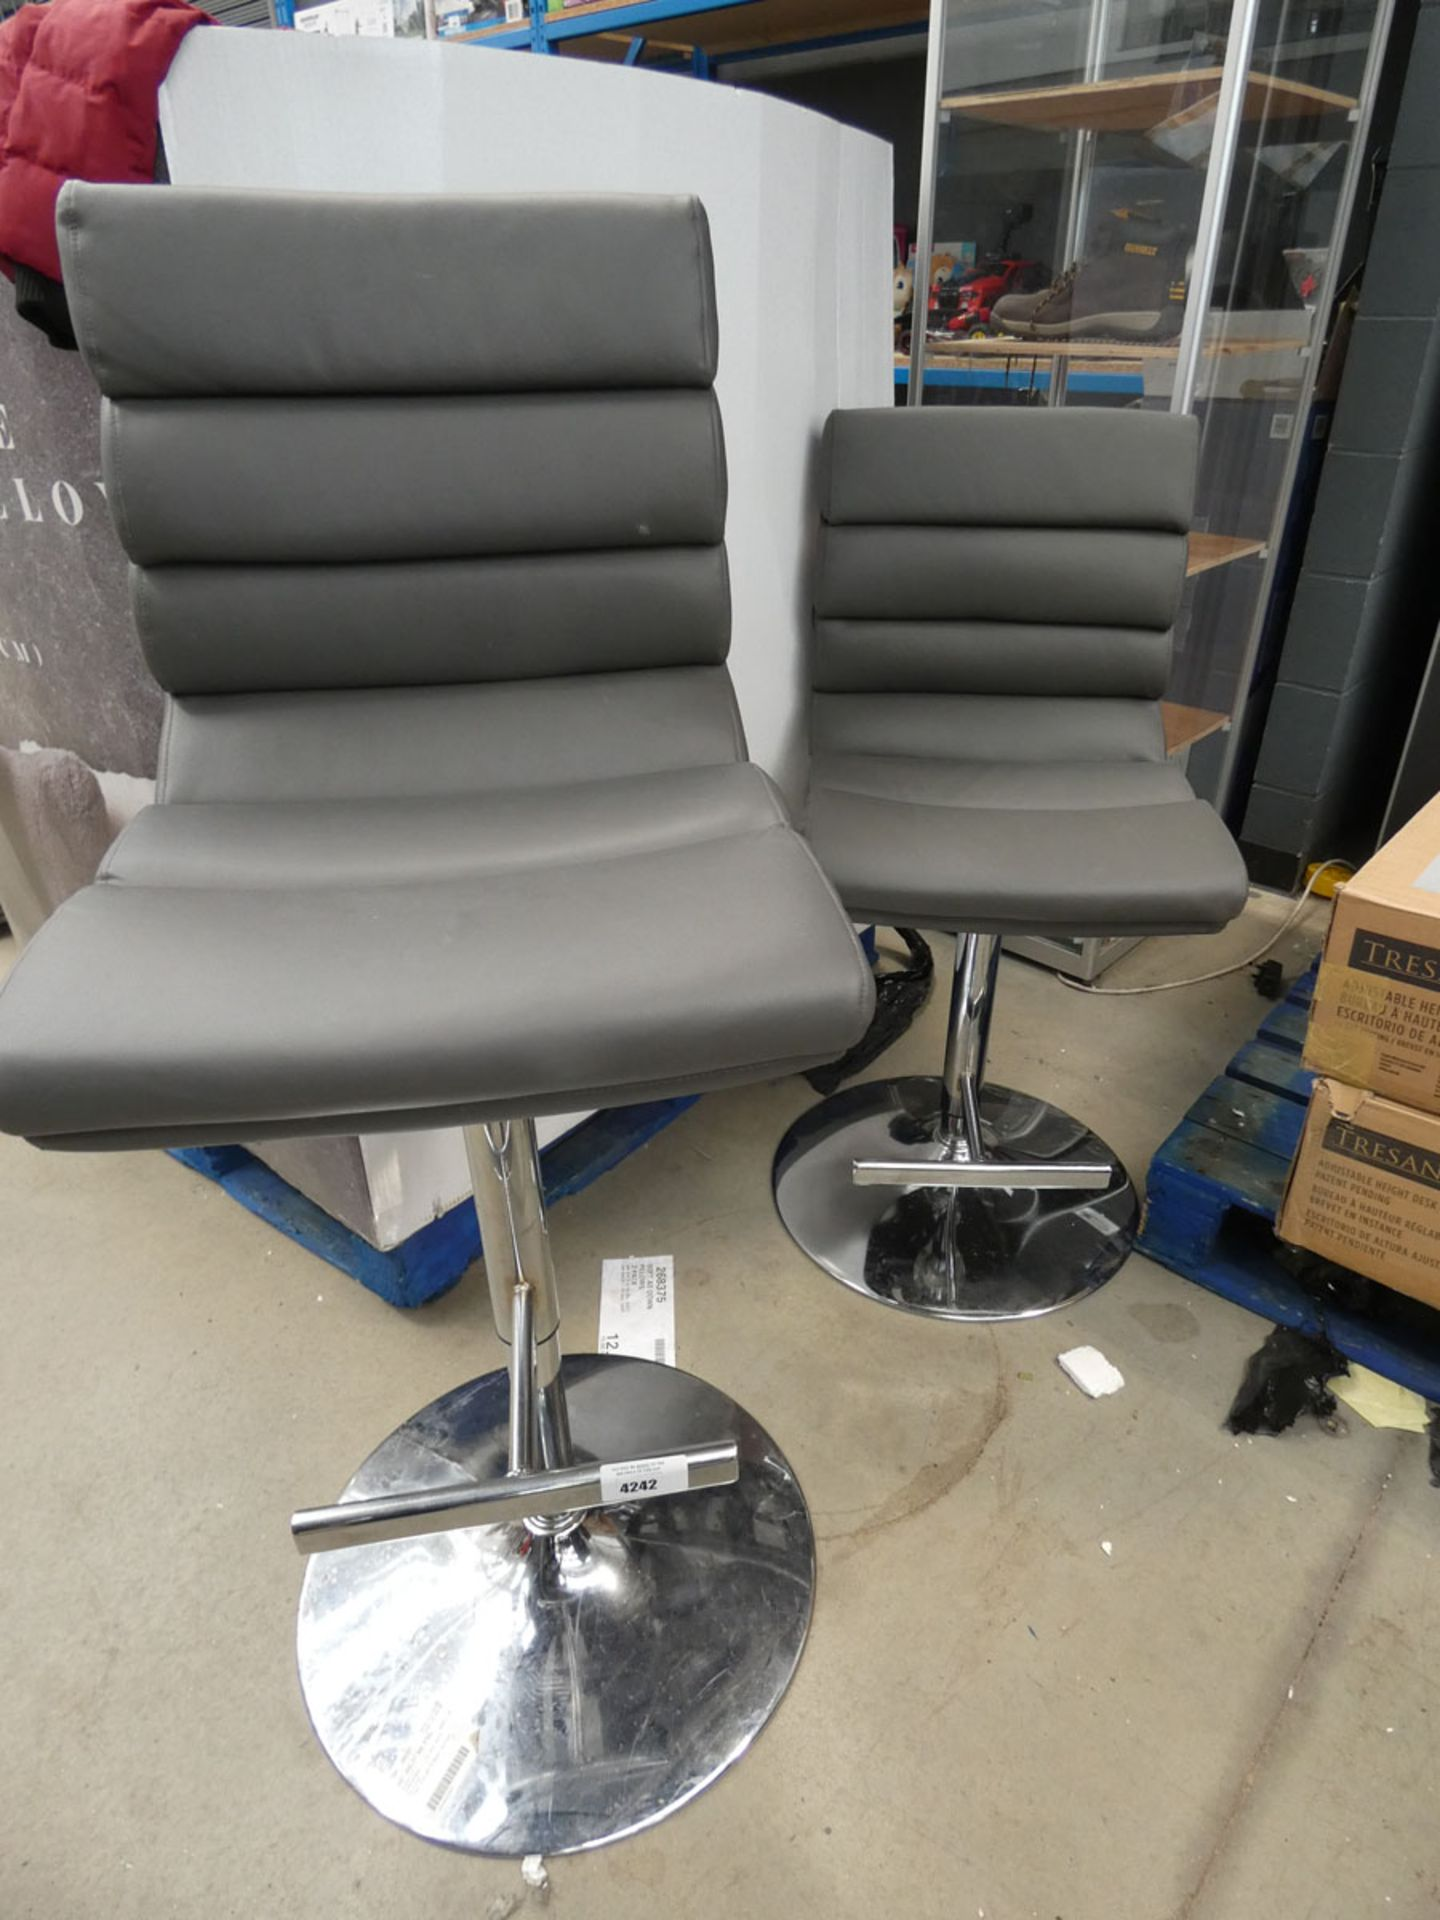 2 grey chrome based bar stools